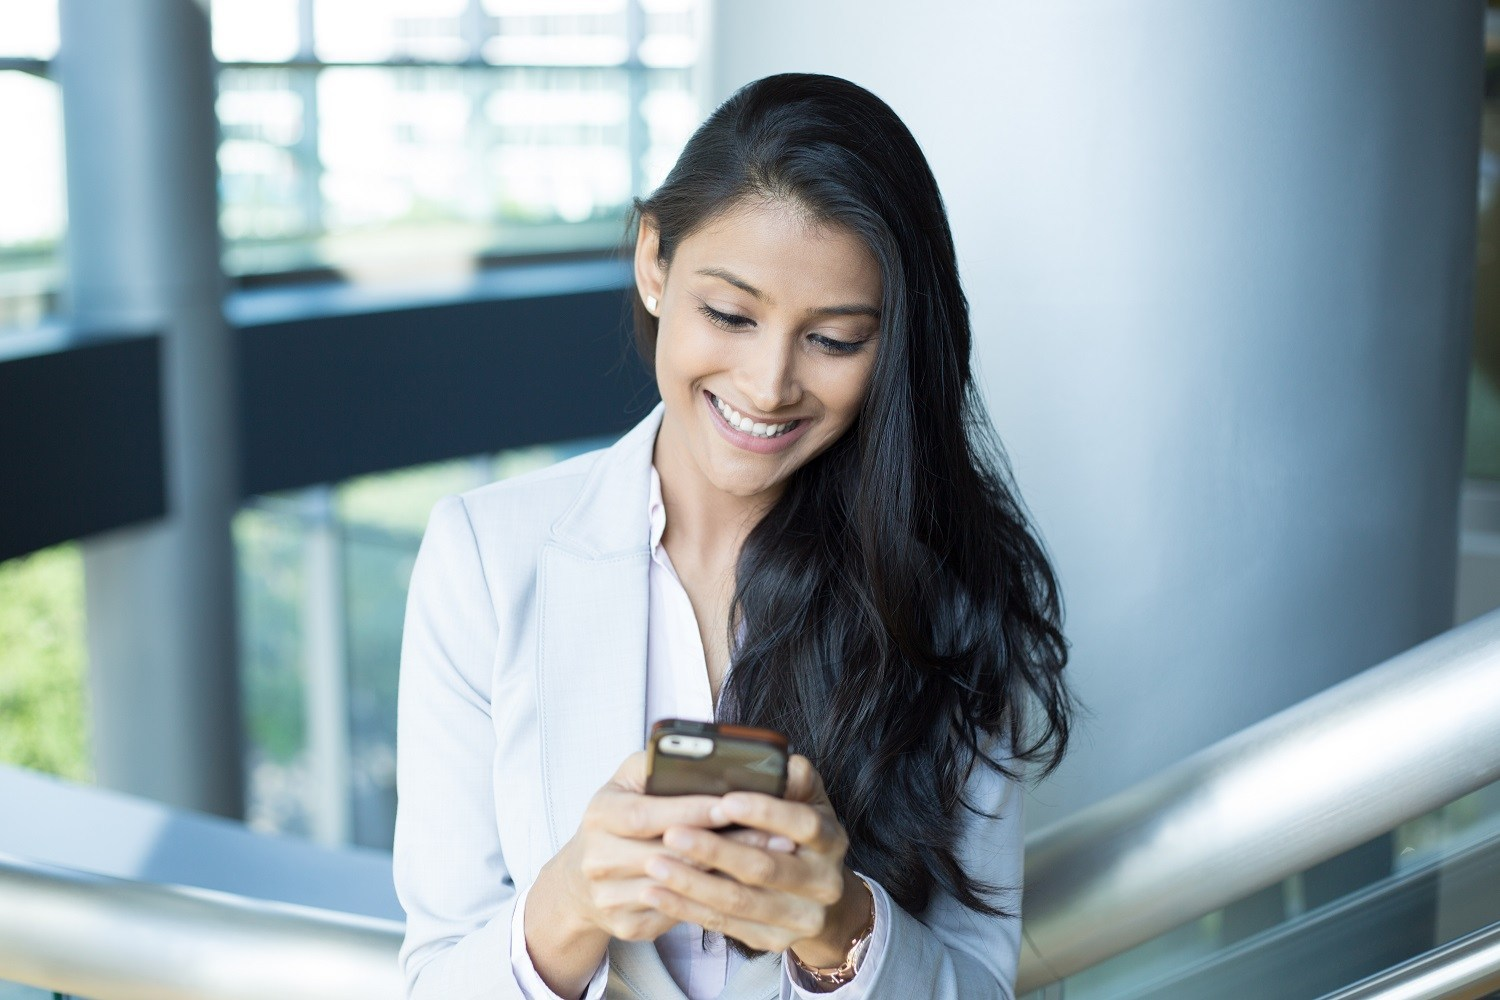 a woman using a smartphone